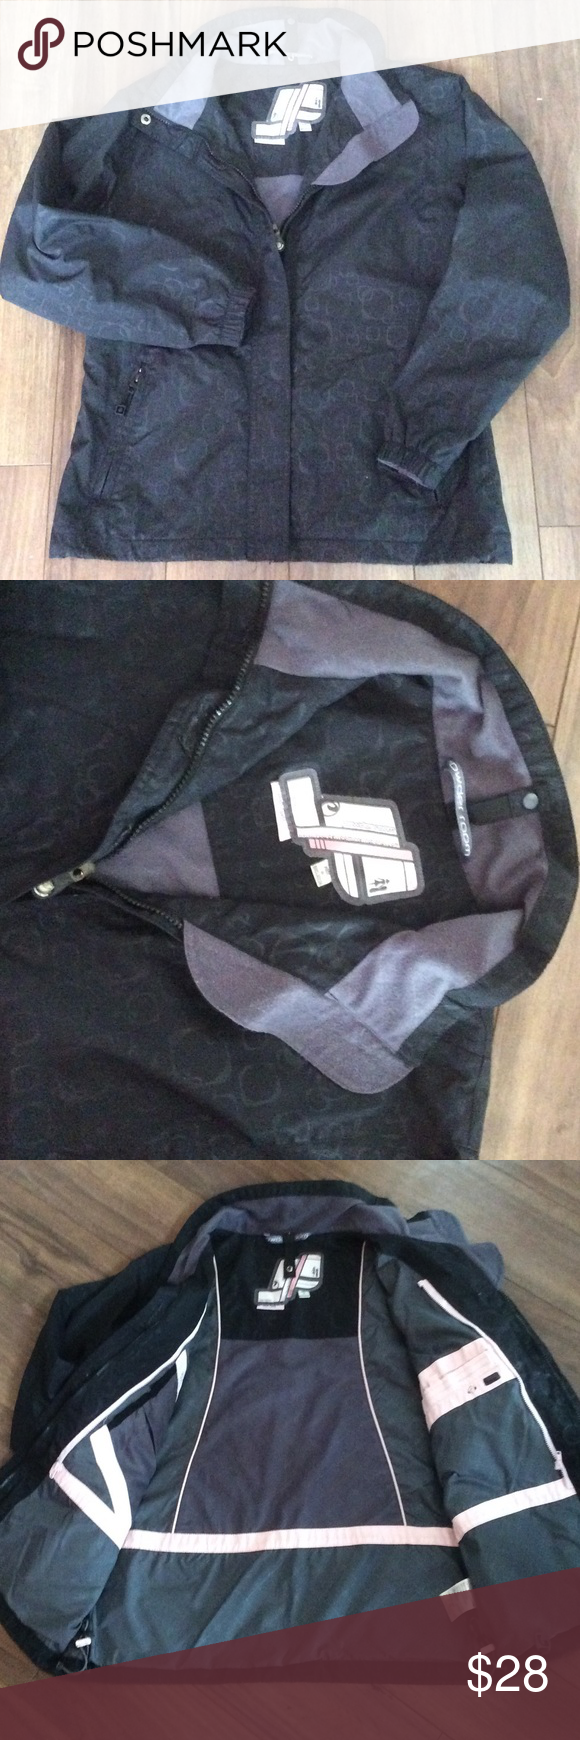 Powder Room Snowboard Jacket Size S With Images Snowboard